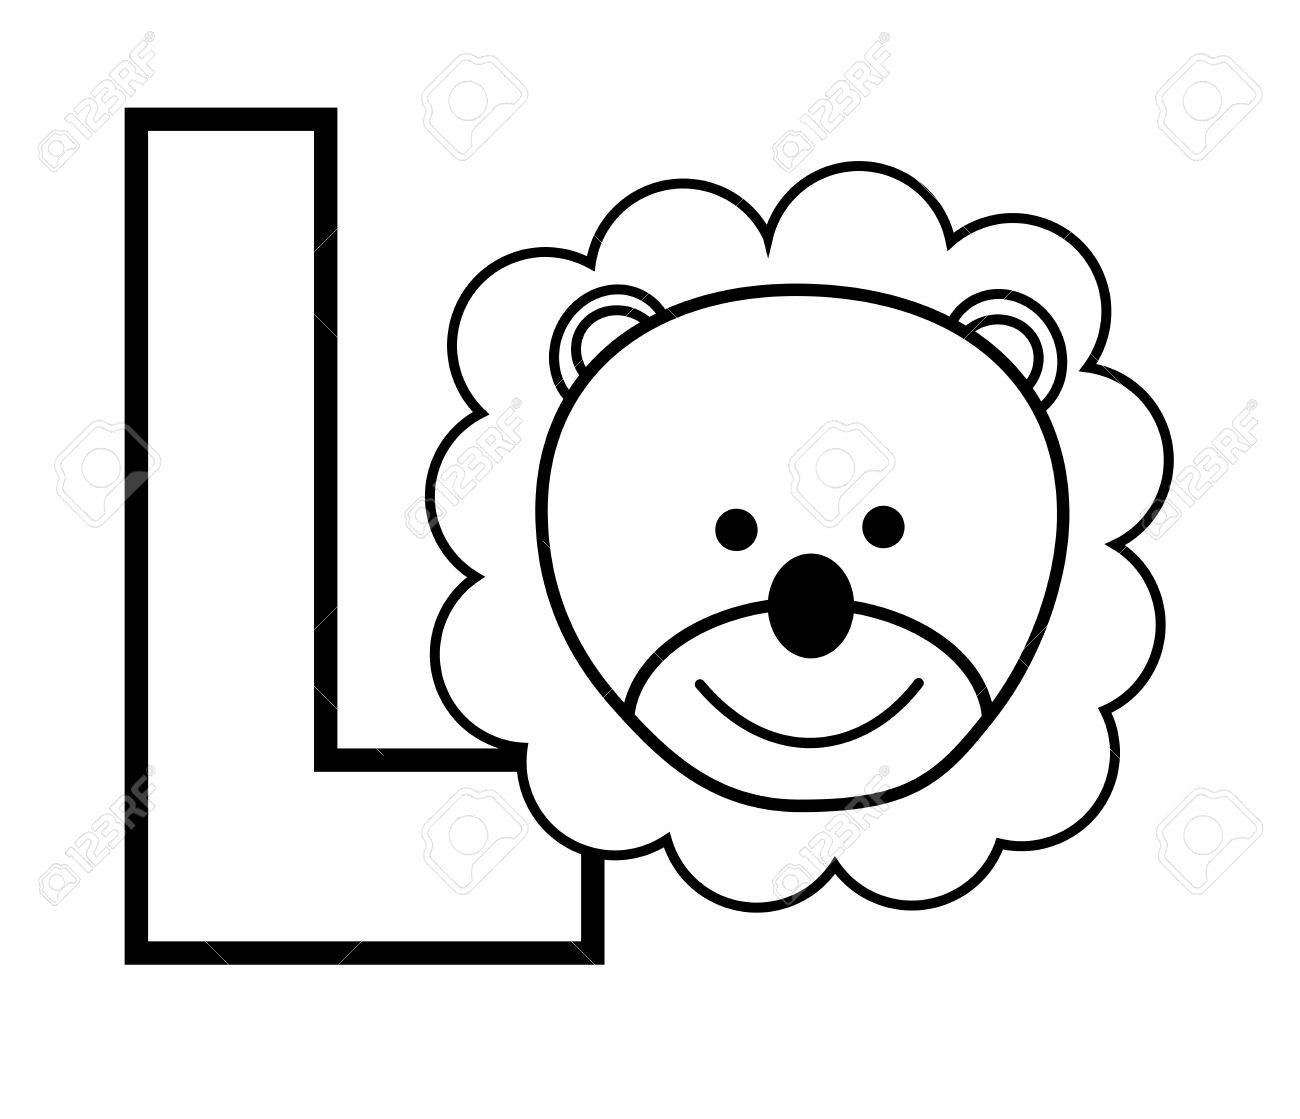 L Is For Lion Coloring Page Royalty Free Cliparts, Vectors, And ...